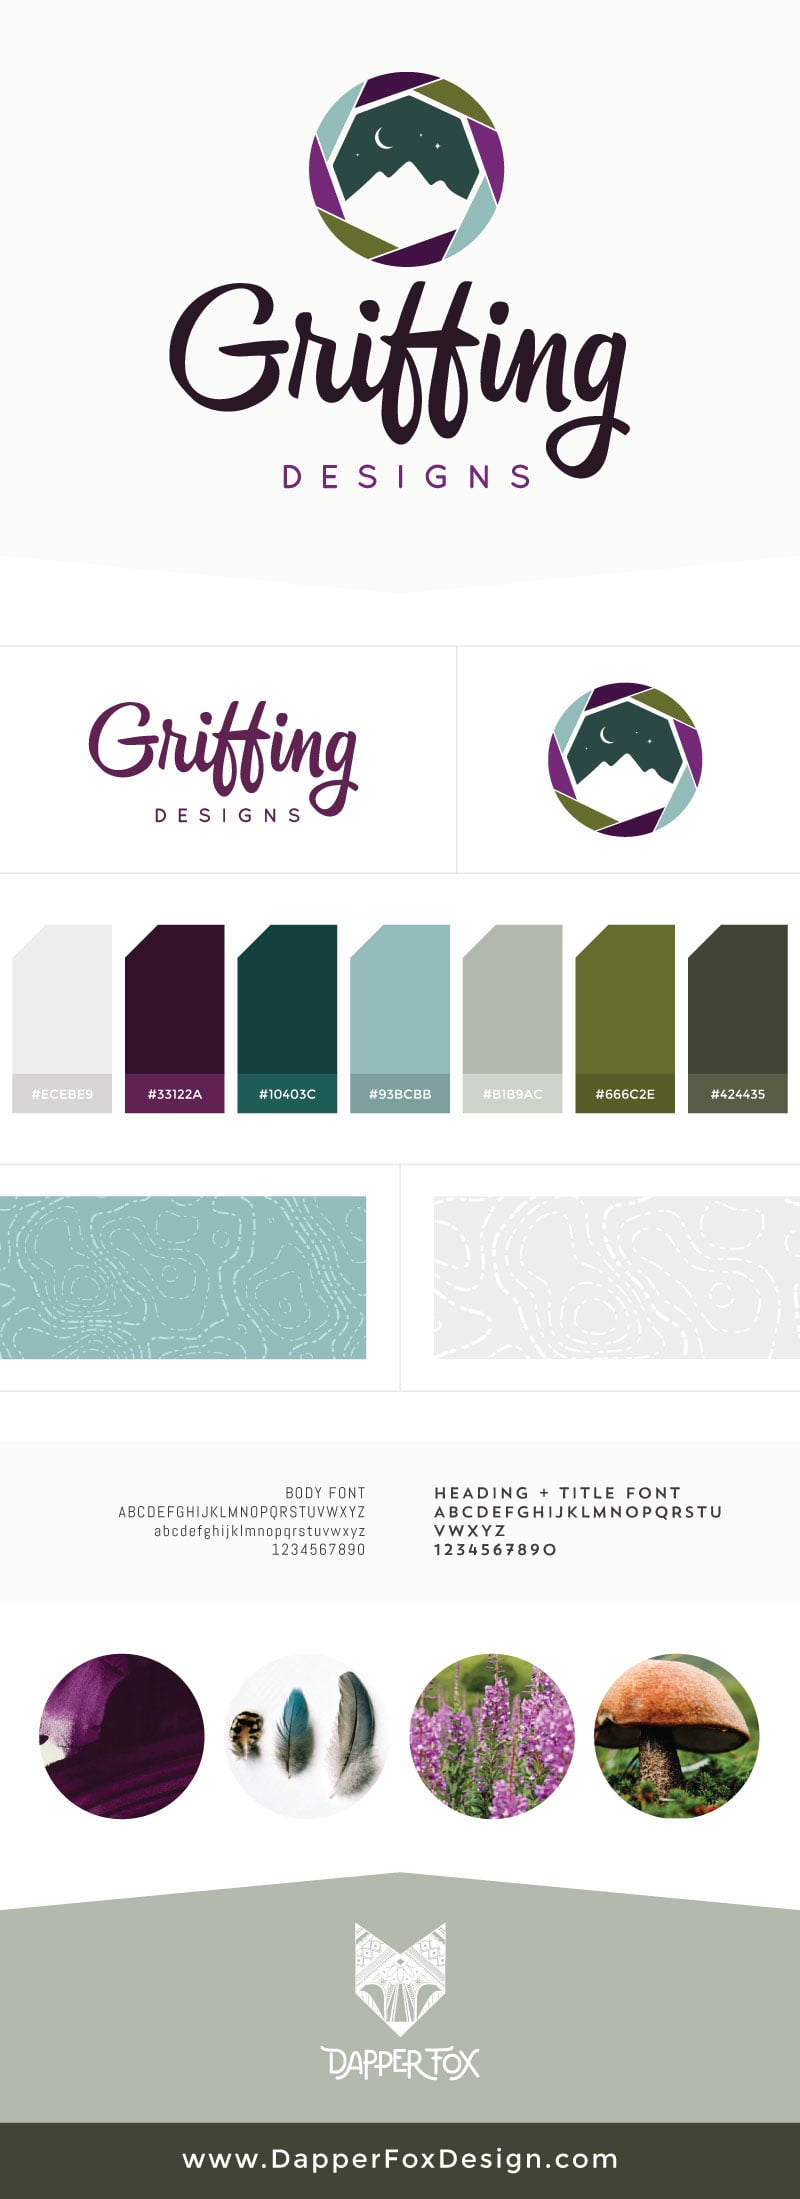 Brand Board for Griffing Designs - Modern Logo Design, Earthy, Green, Blue, Purple Branding, Artistic Logo. Brand and Websites by Dapper Fox Design